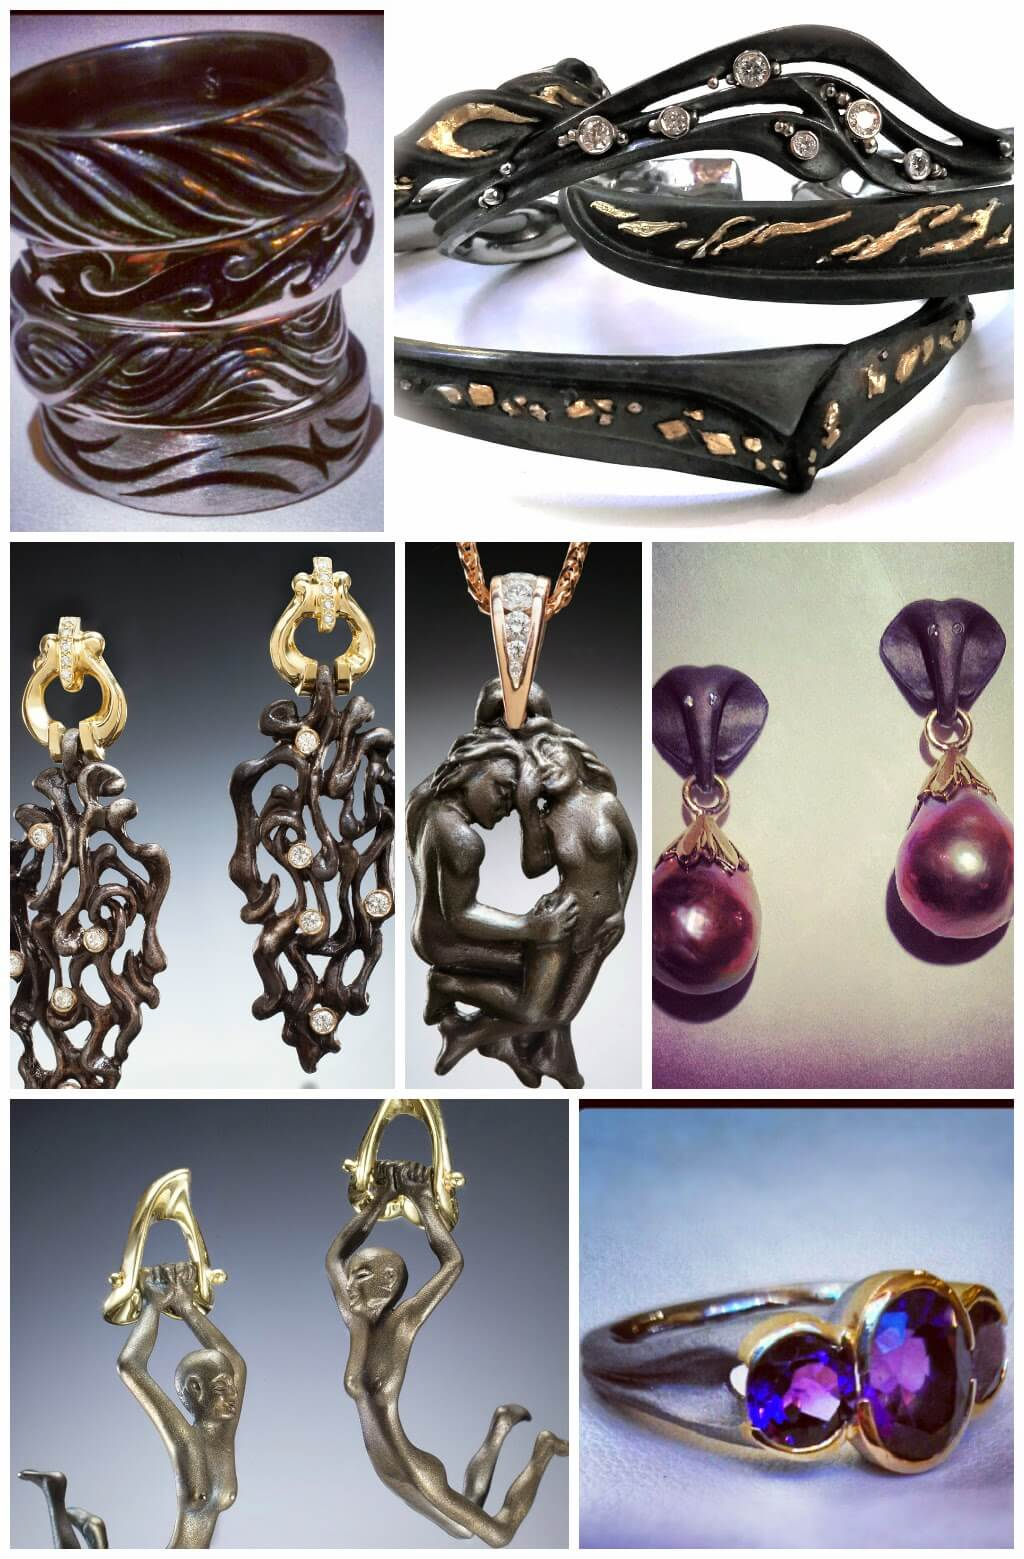 Collage of steel jewelry - earrings, rings and bracelet